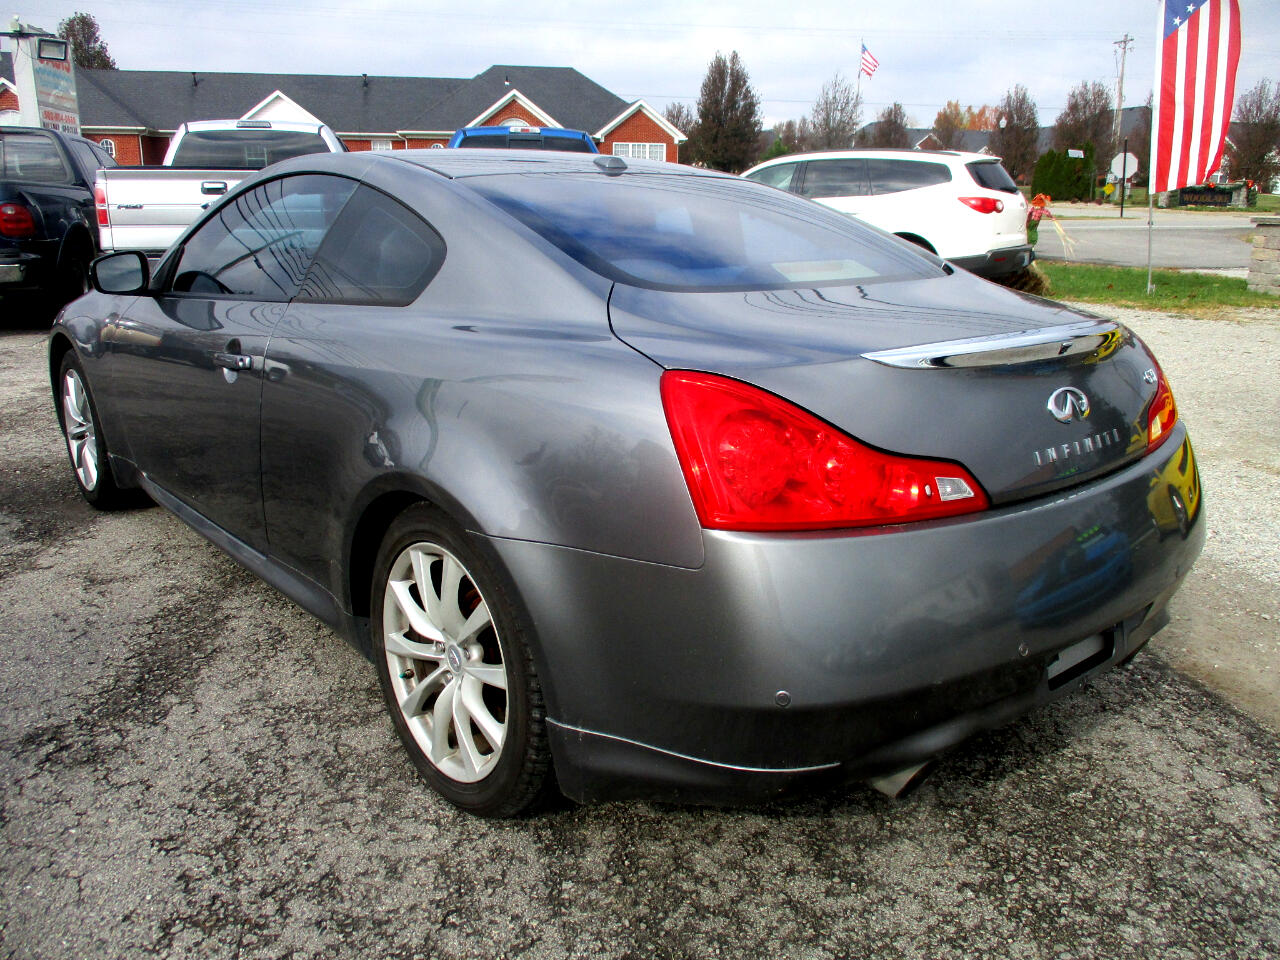 2011 Infiniti G37 Coupe 2dr Journey RWD